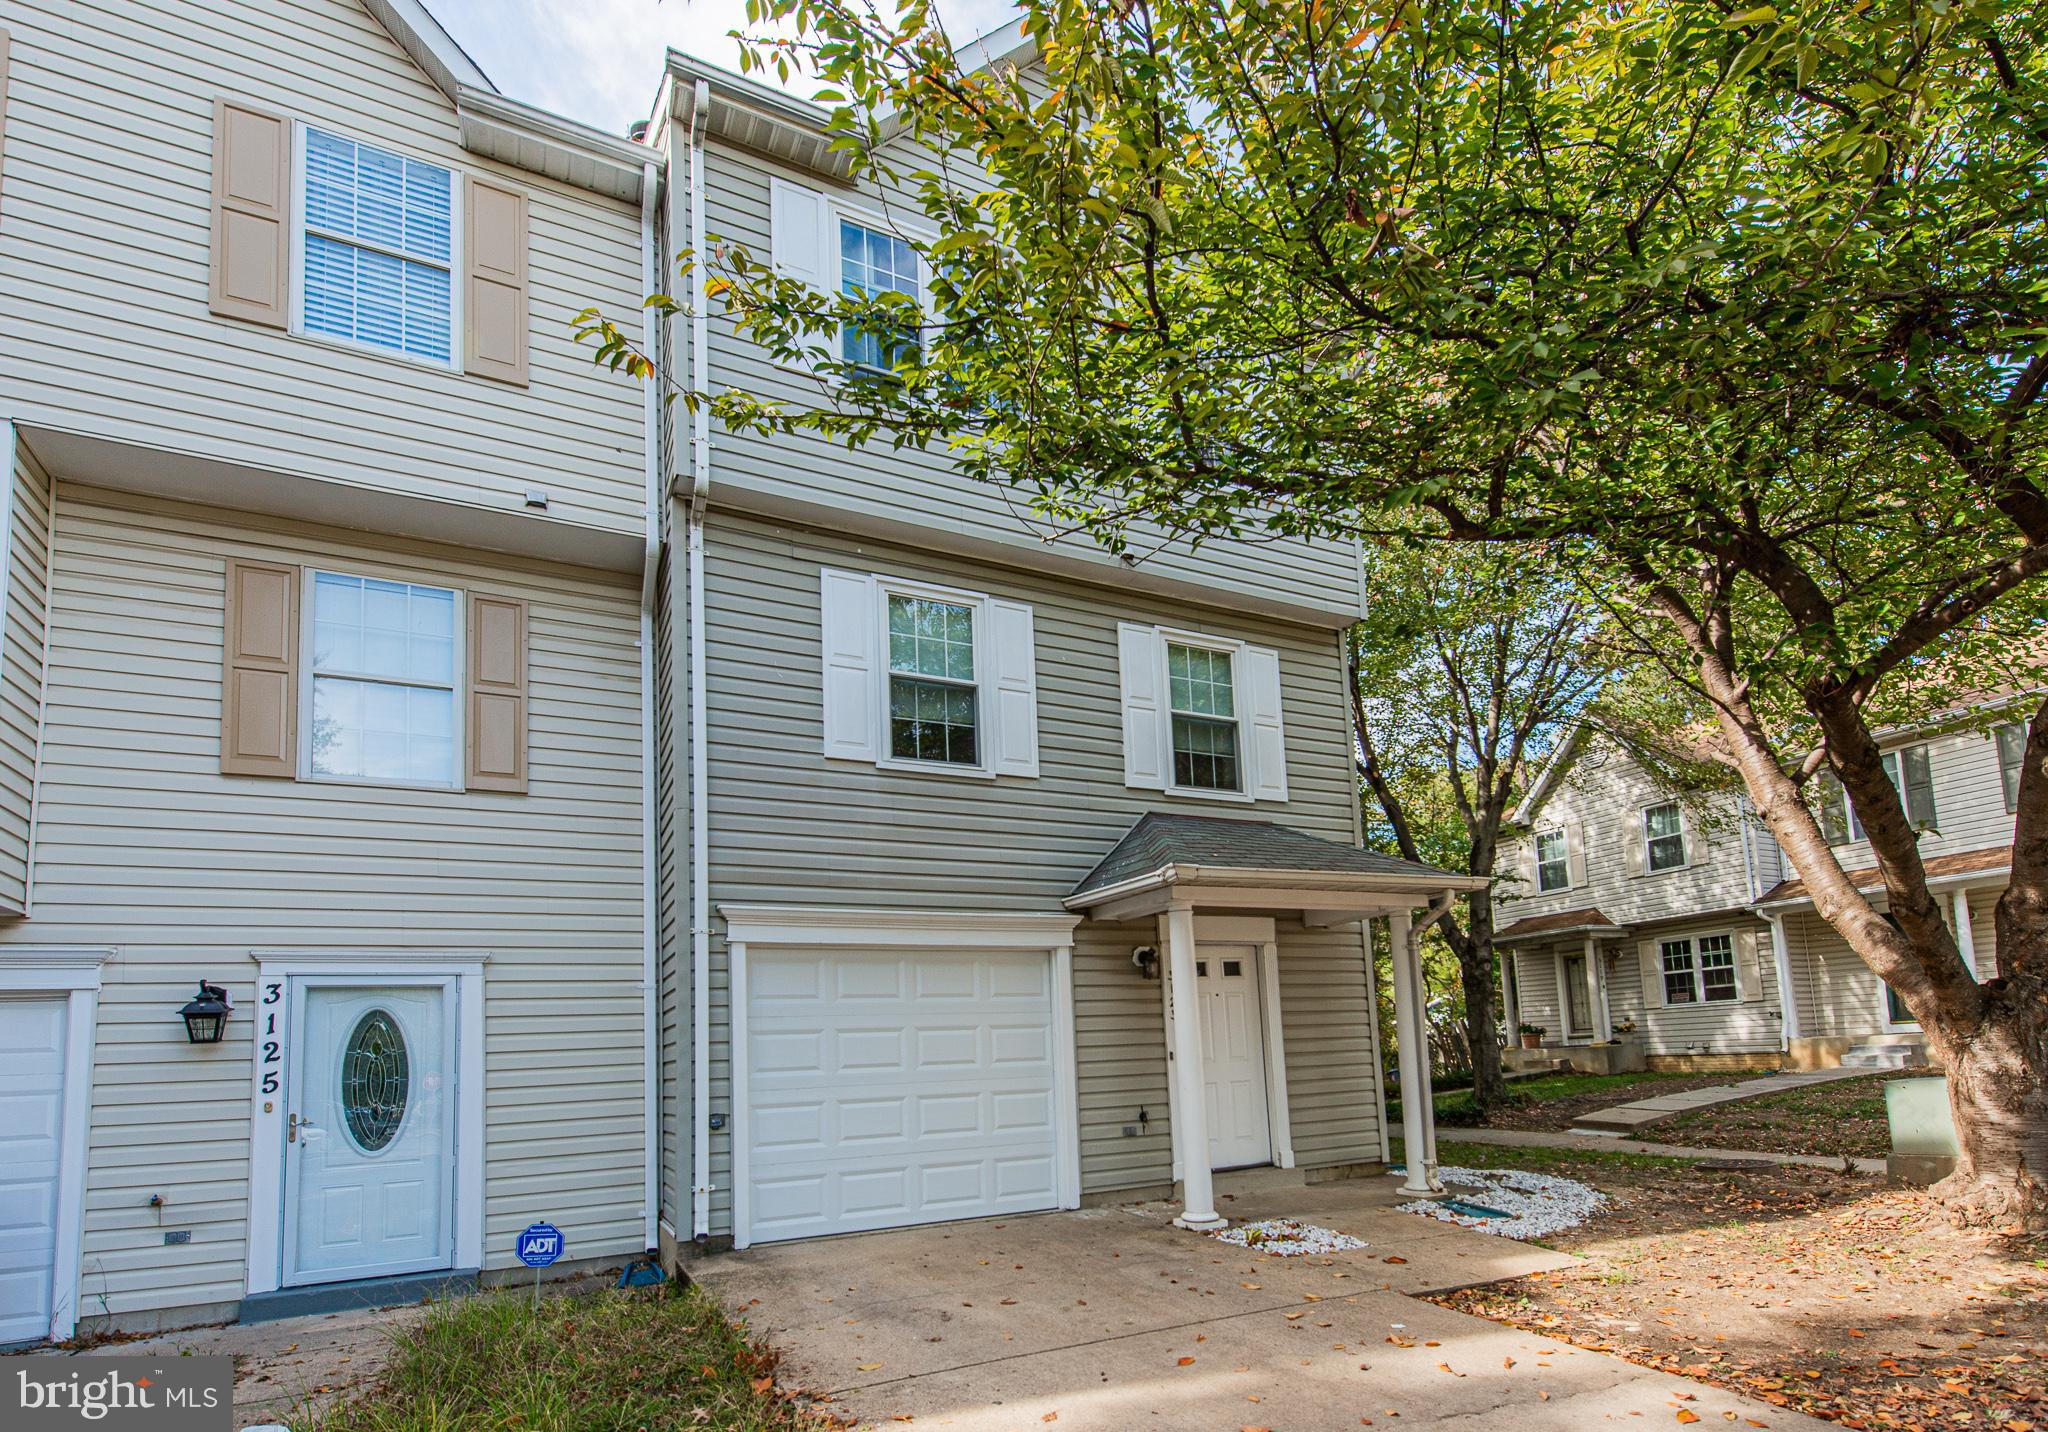 3123 FOREST RUN Dr, District Heights, MD, 20747